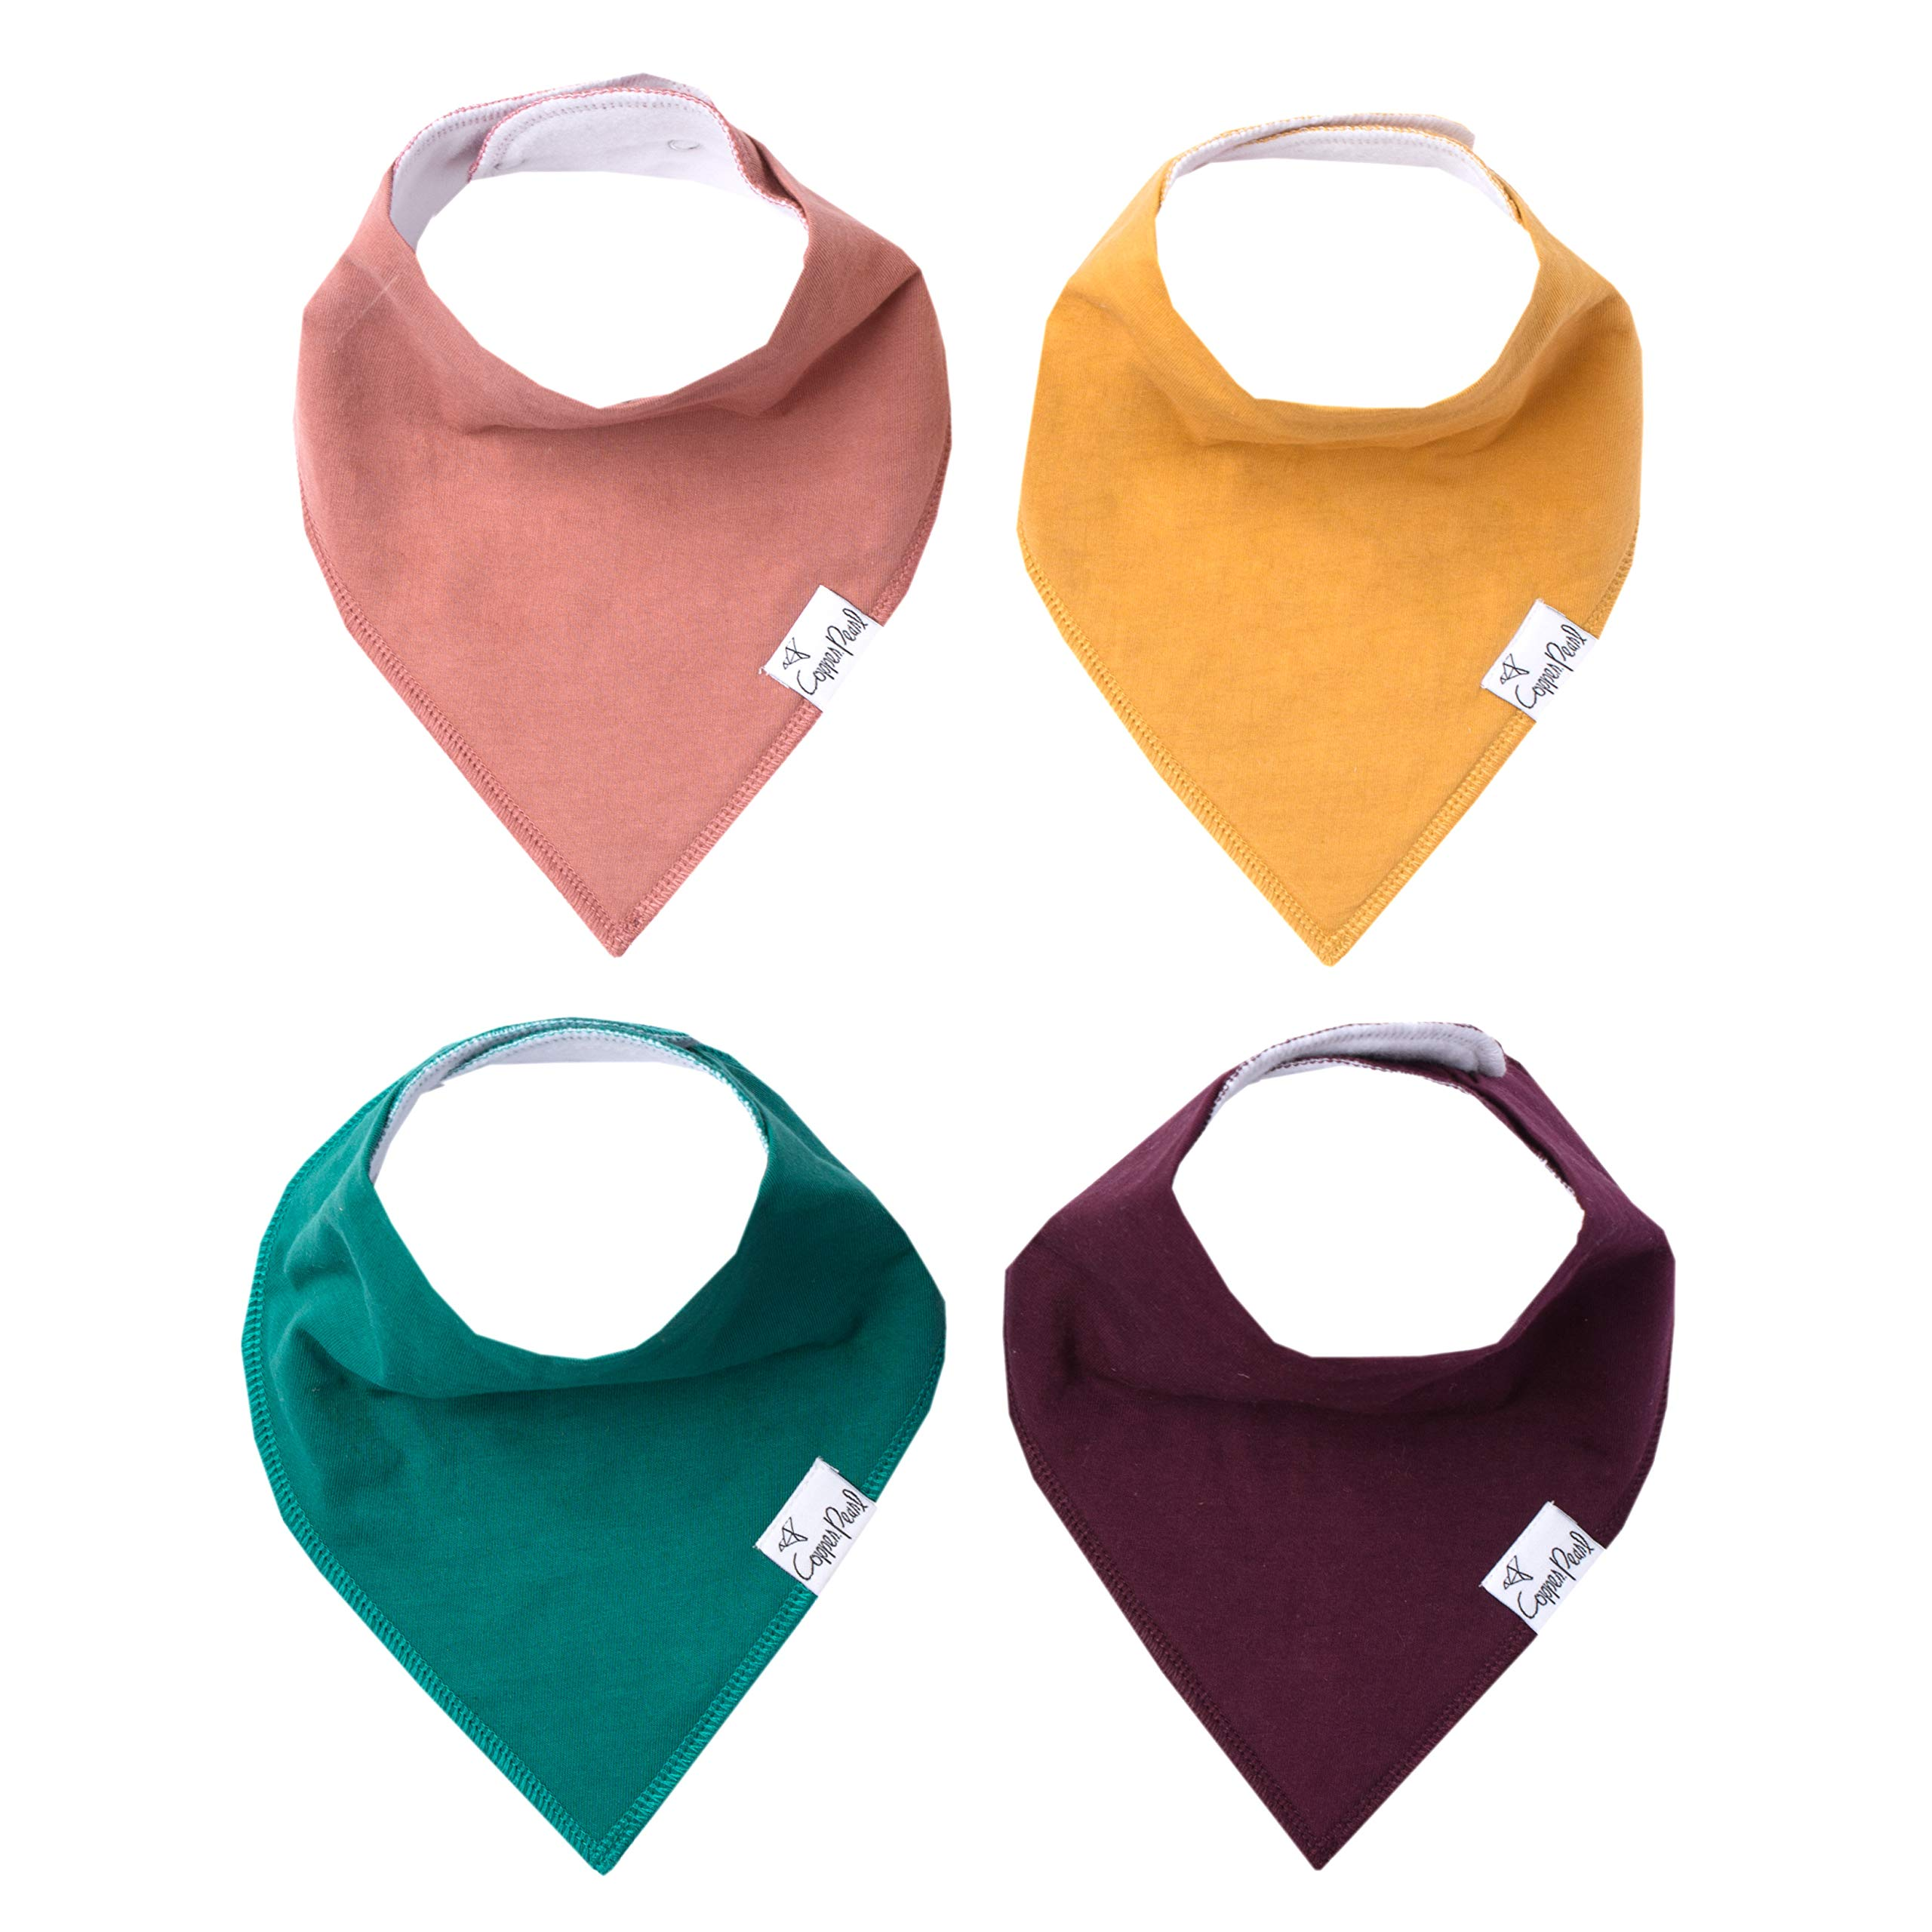 Baby Bandana Drool Bibs for Drooling and Teething 4 Pack Gift Set ''Jade'' by Copper Pearl by Copper Pearl